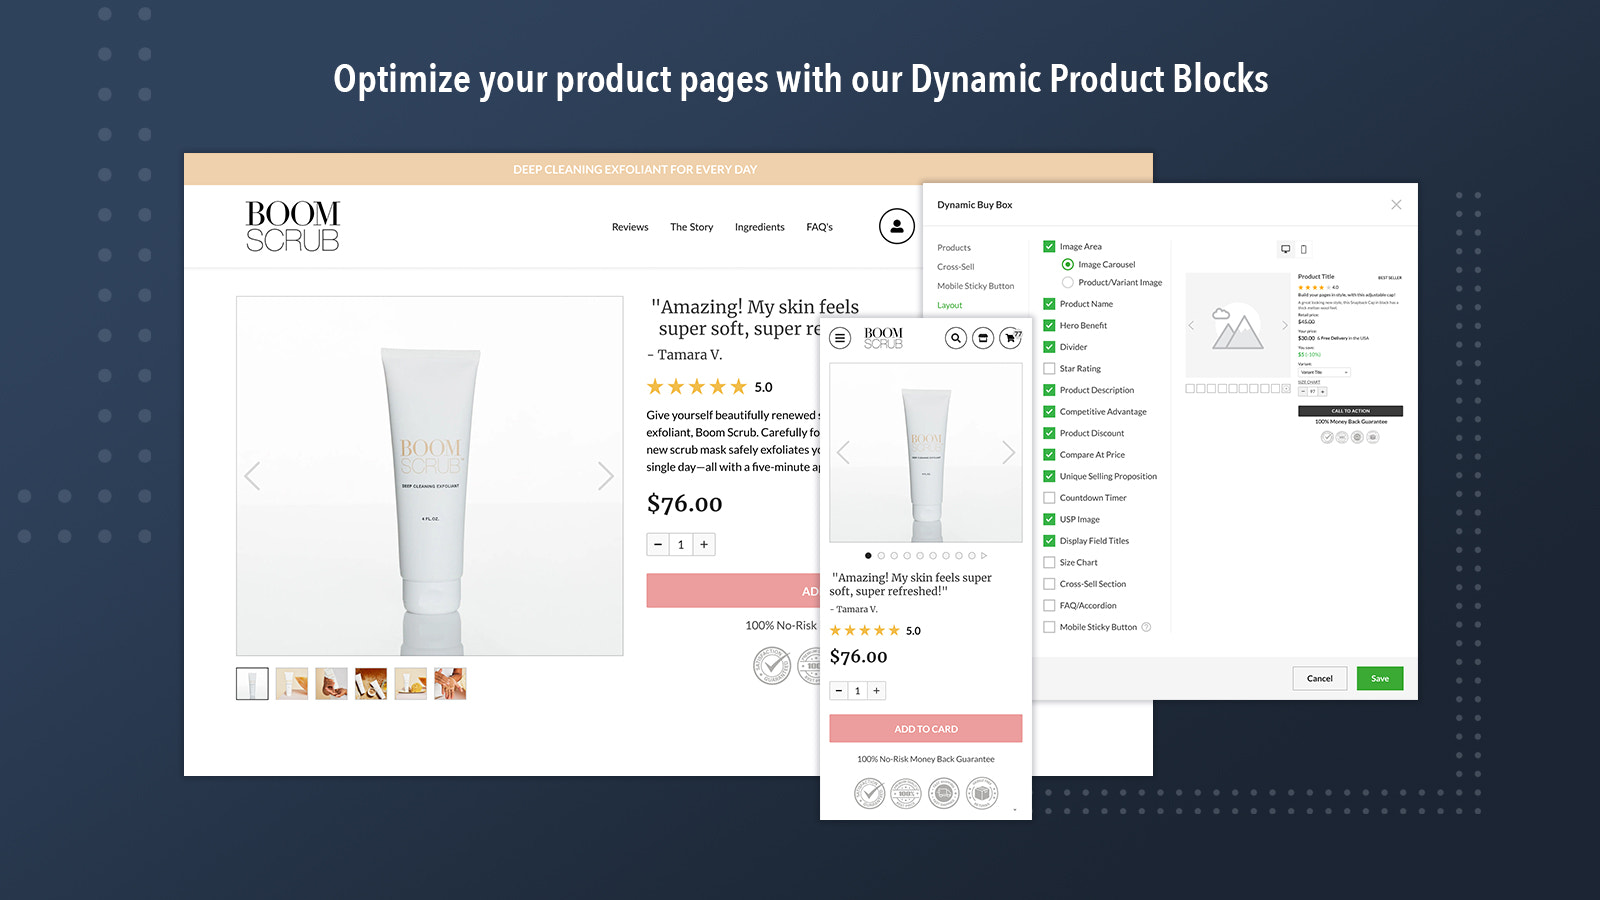 Optimize your product pages with our Dynamic Product Blocks